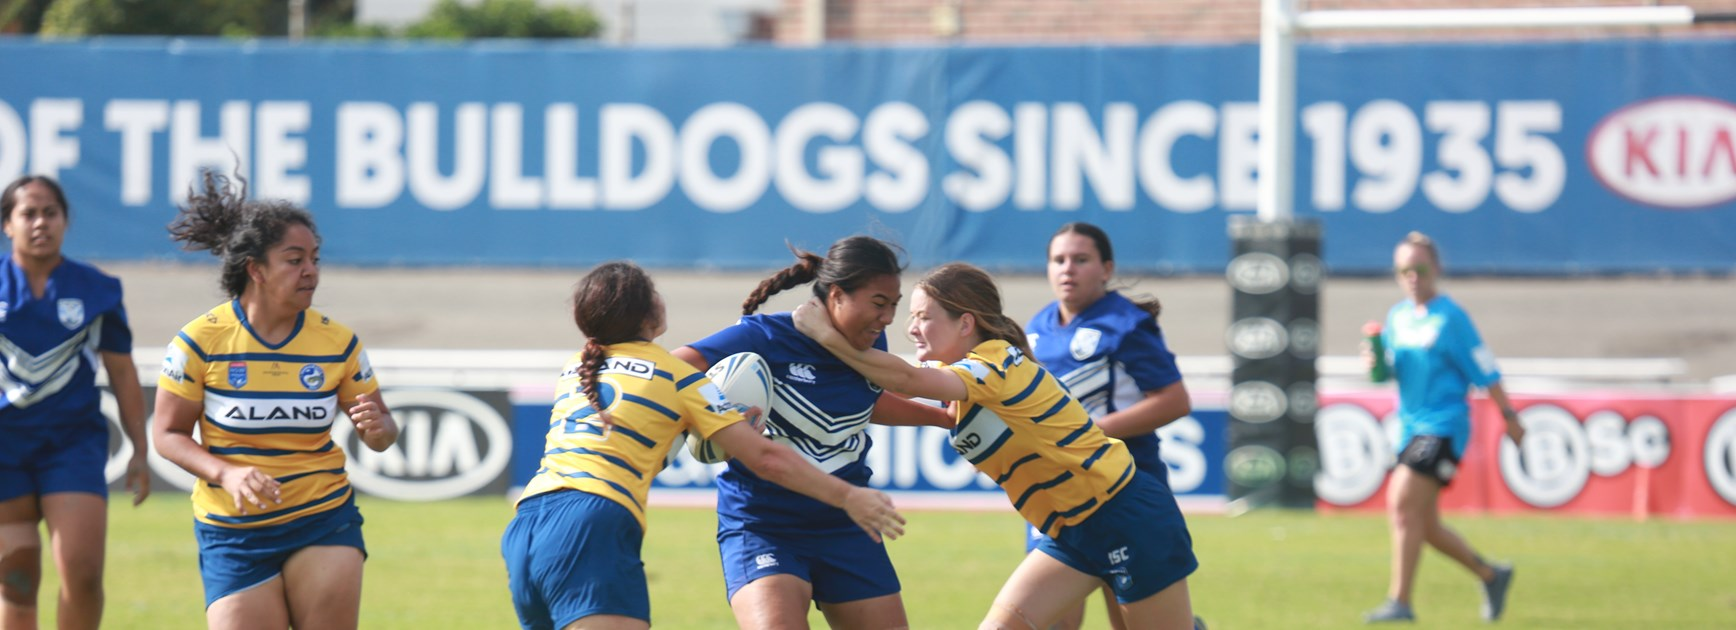 Tarsha Gale | Bulldogs go down to Parramatta Eels at Belmore